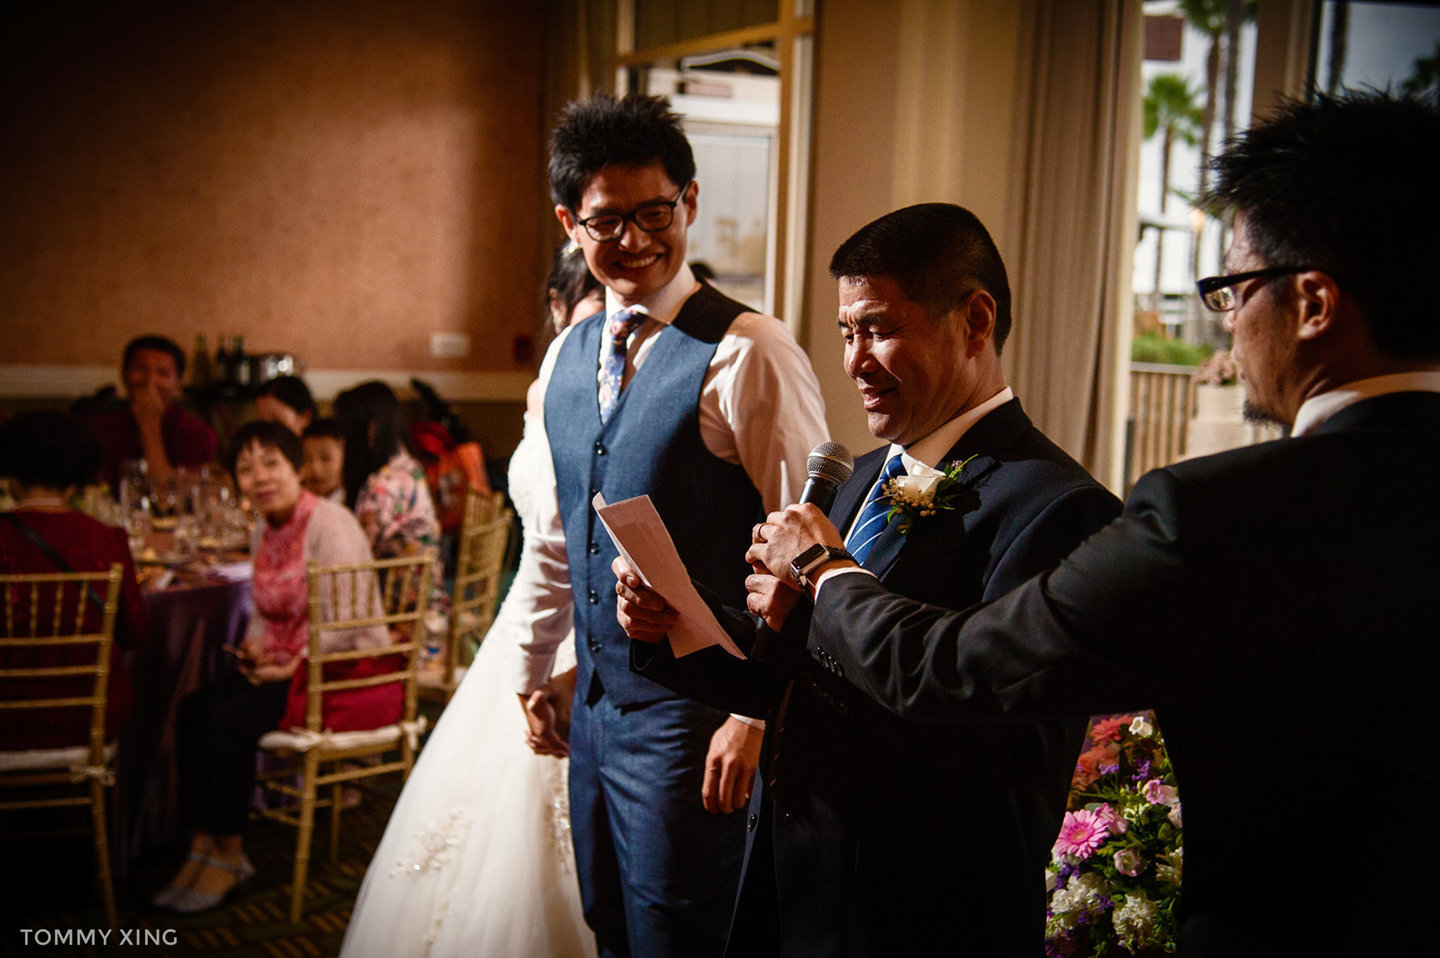 Paradise Point Resort Wedding Xiaolu & Bin San Diego 圣地亚哥婚礼摄影跟拍 Tommy Xing Photography 洛杉矶婚礼婚纱照摄影师 236.jpg